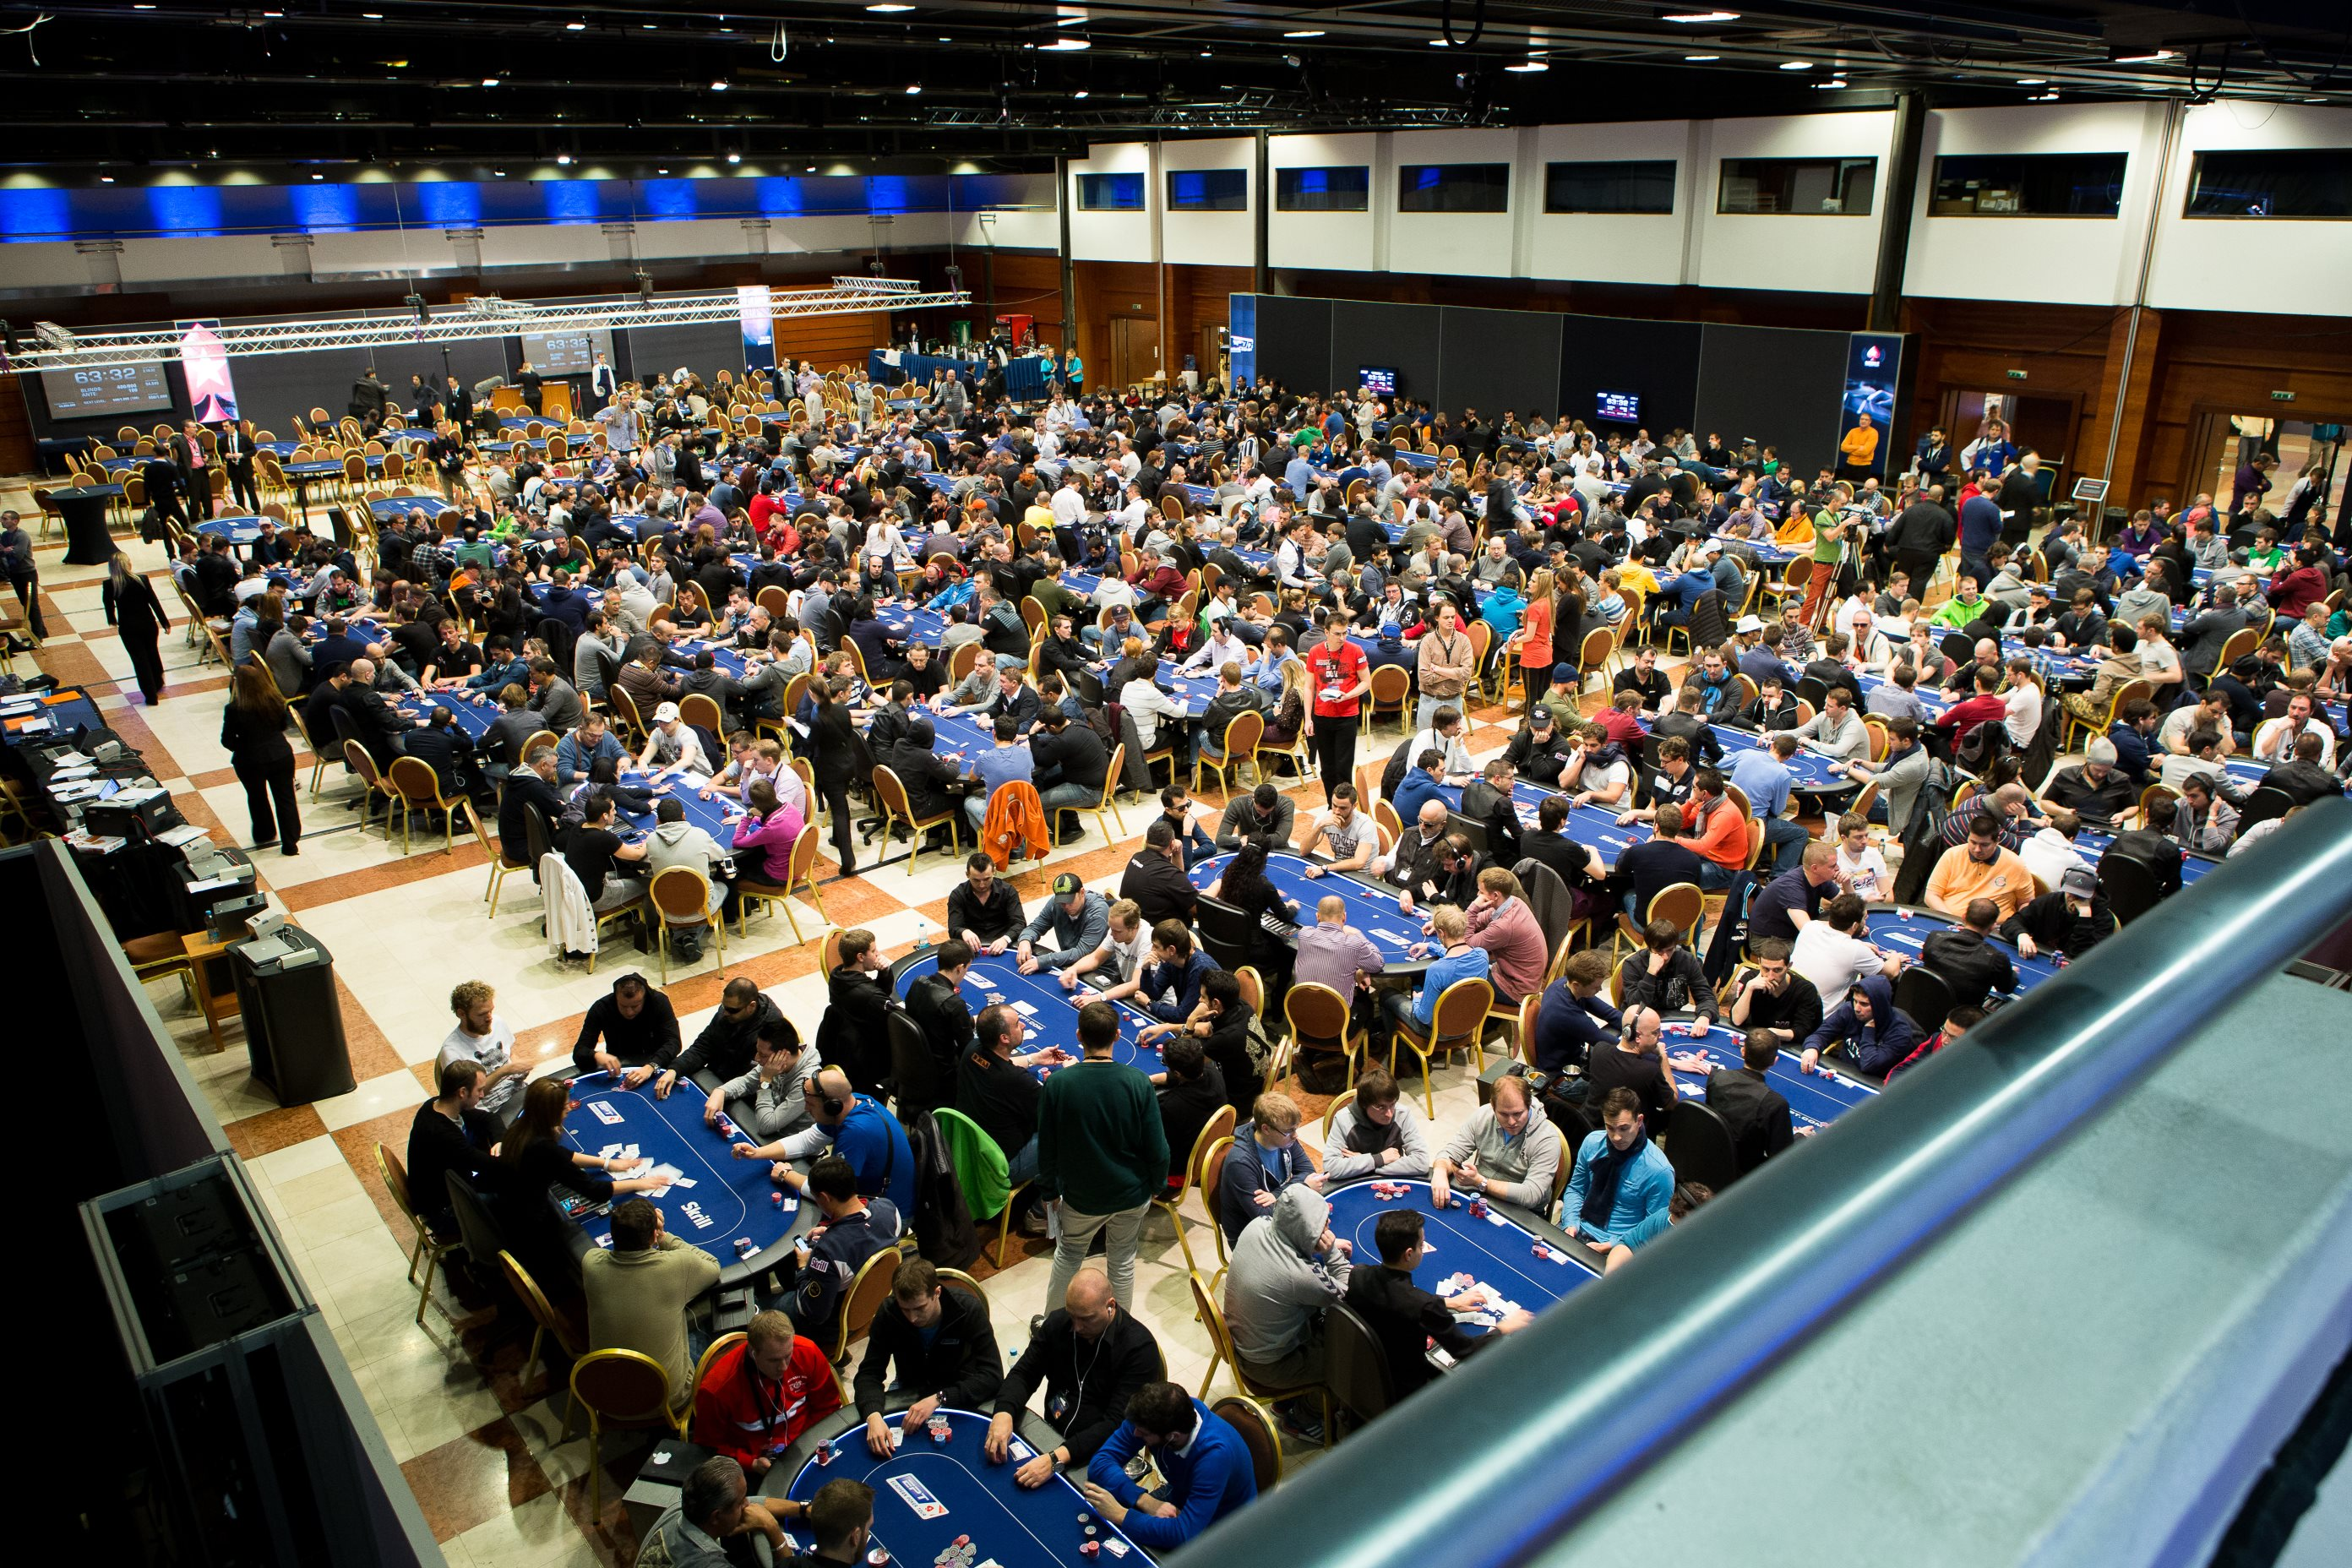 Bedlam in Prague: Poker Dies?